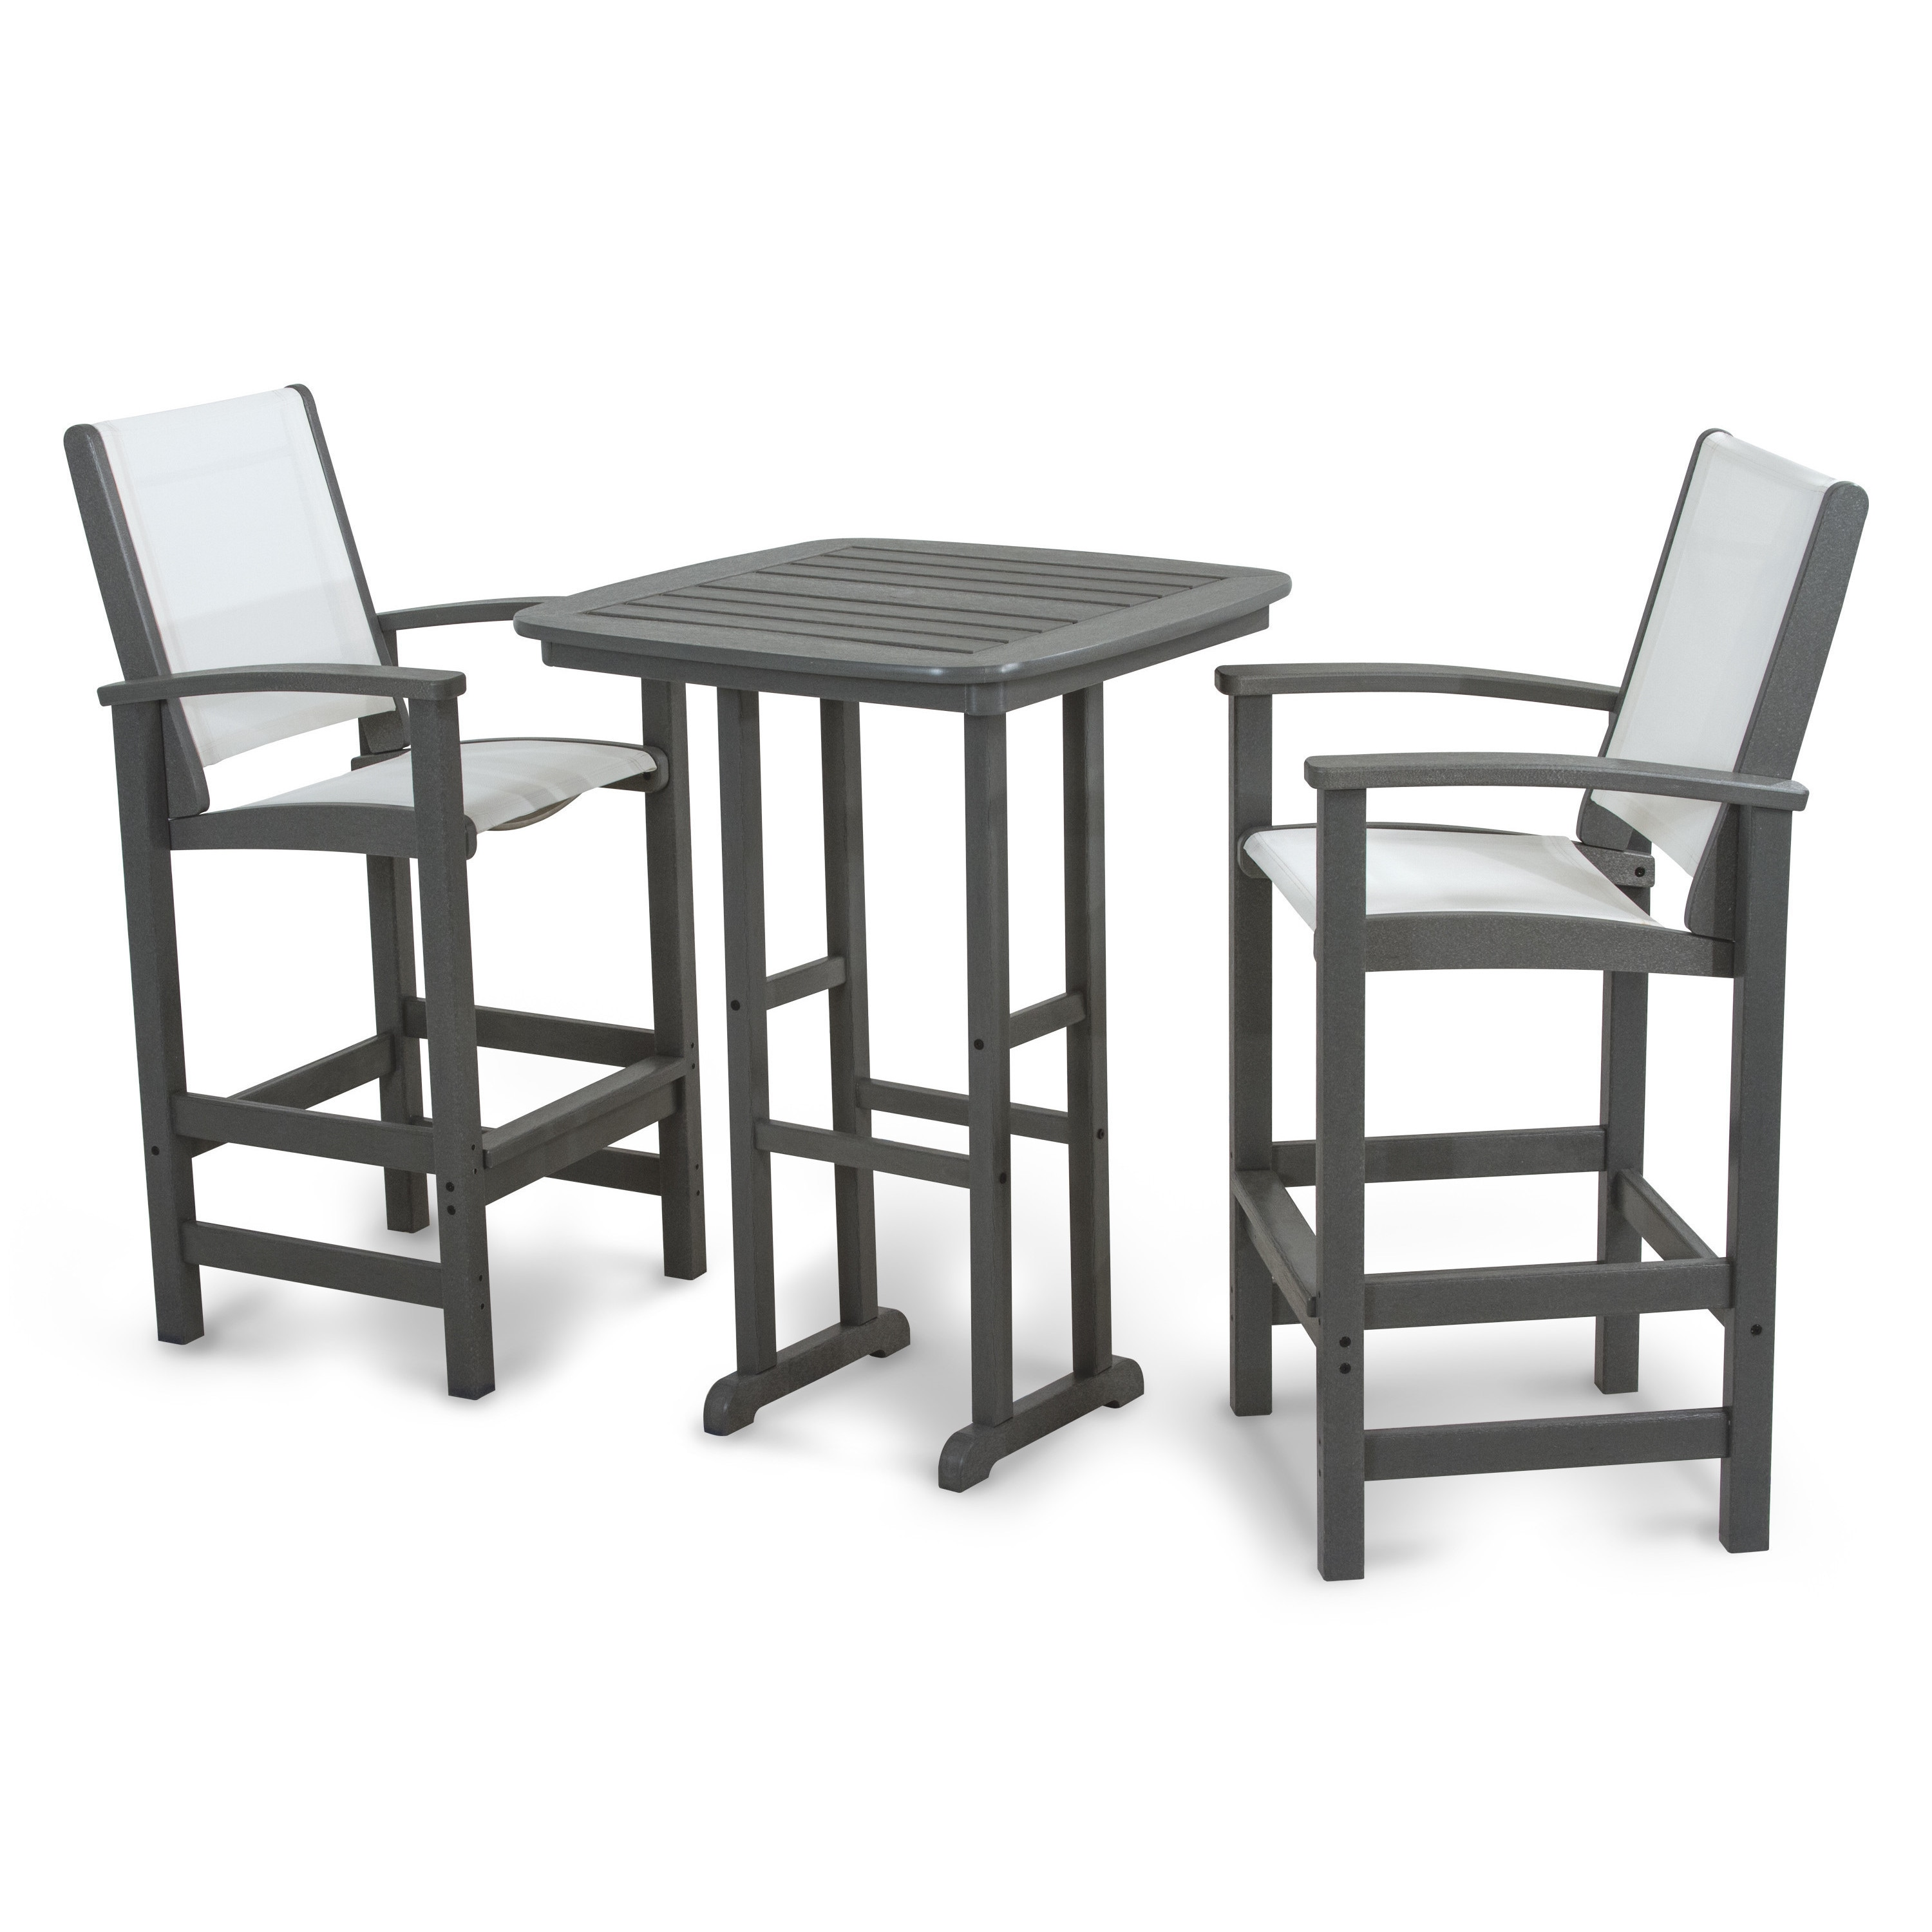 Polywood Coastal 3 Piece Outdoor Tall Bar Set With Table Overstock 10084908